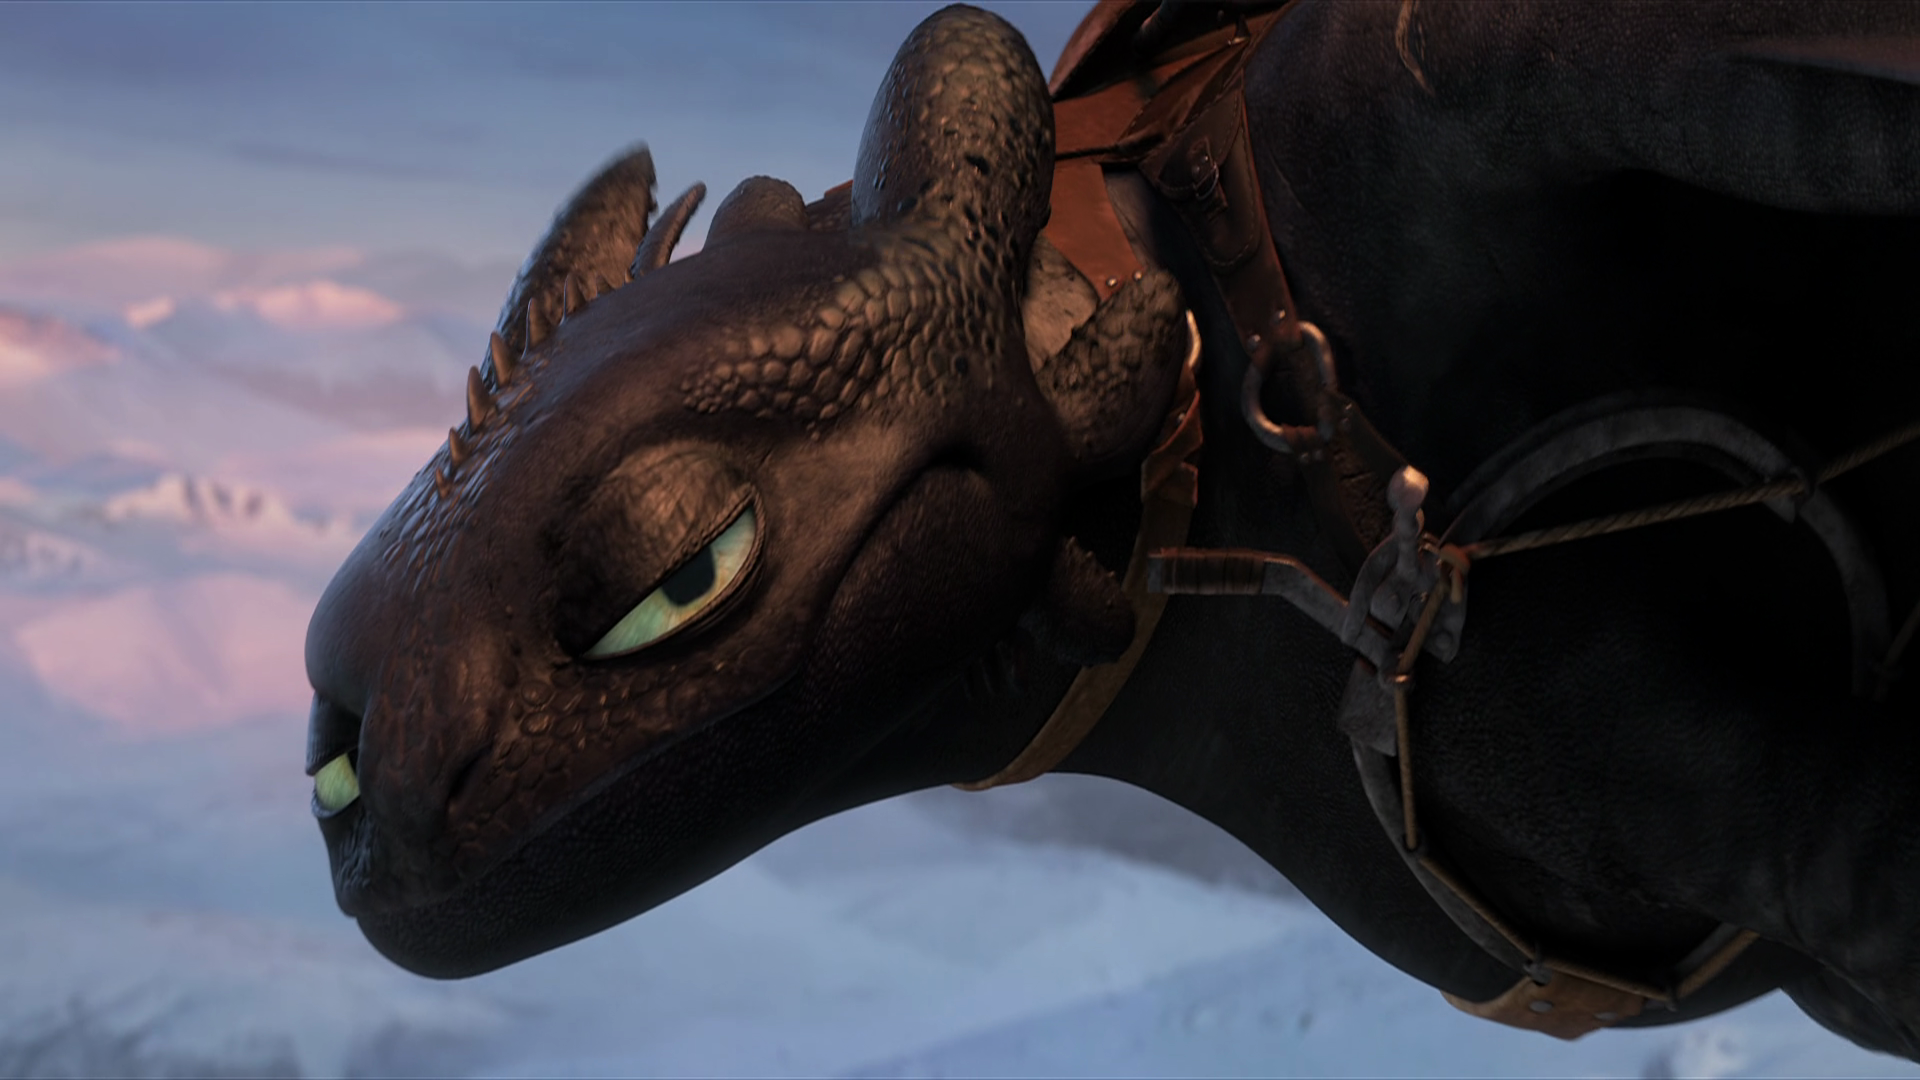 how-to-train-your-dragon-toothless-wallpapers-free | wallpaper.wiki